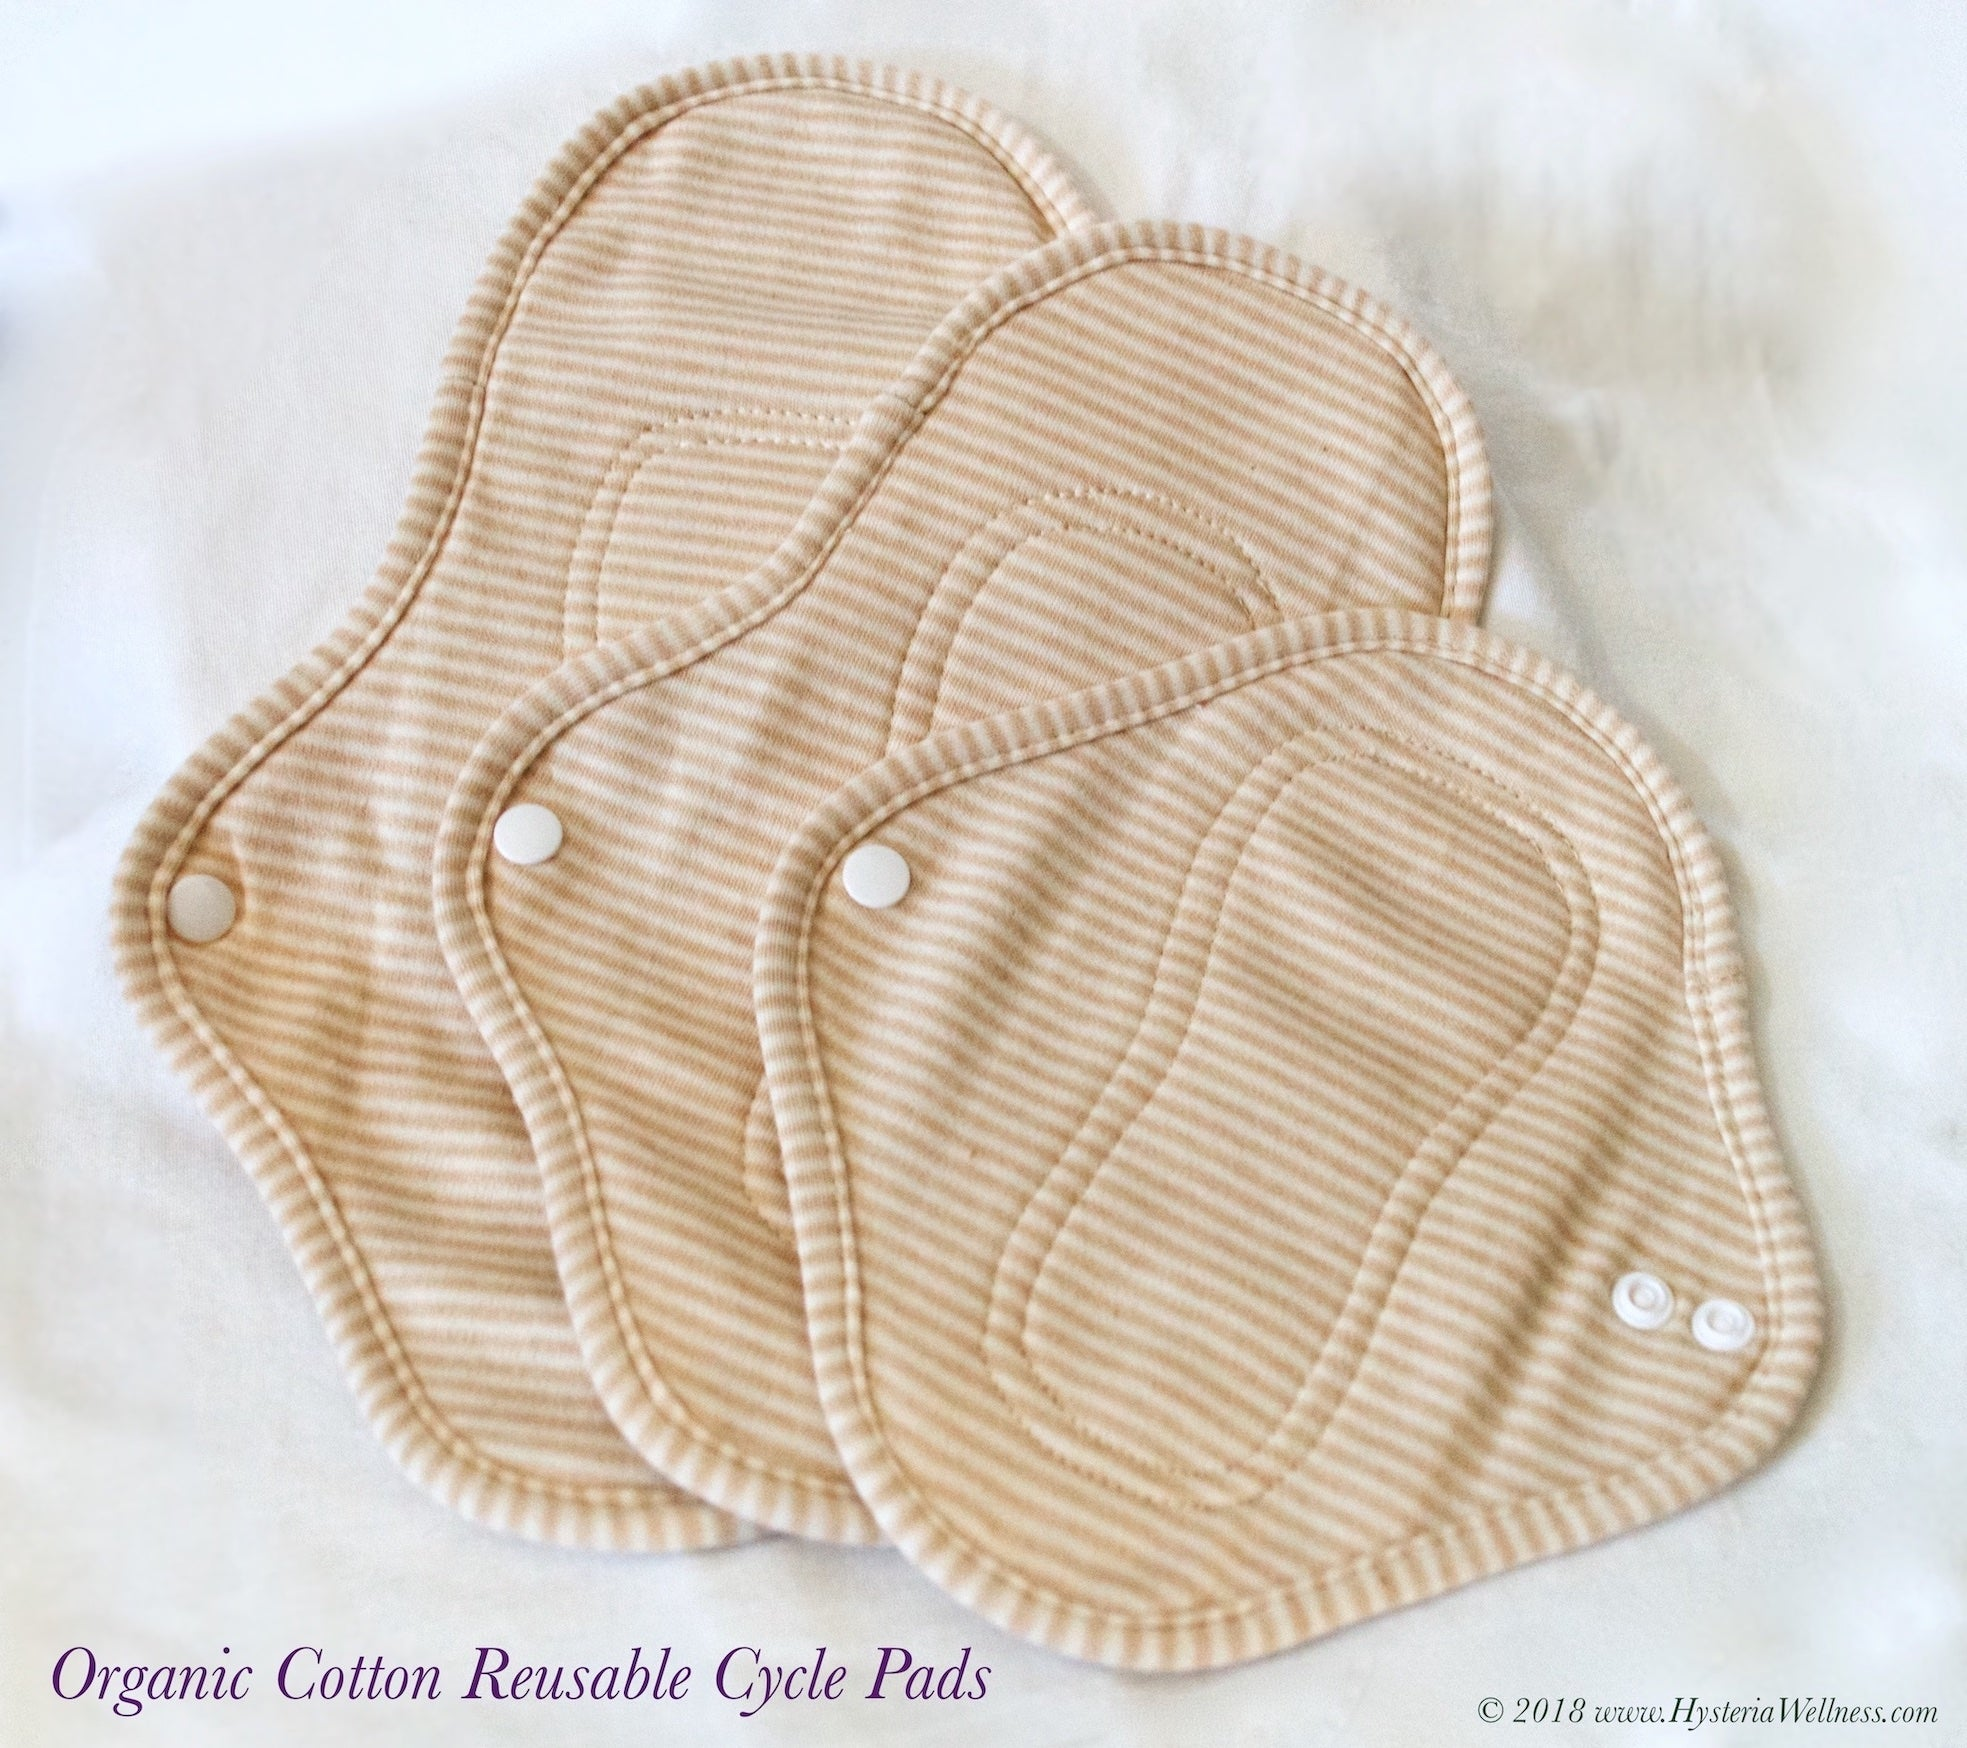 Organic Cotton Reusable Cycle Pads